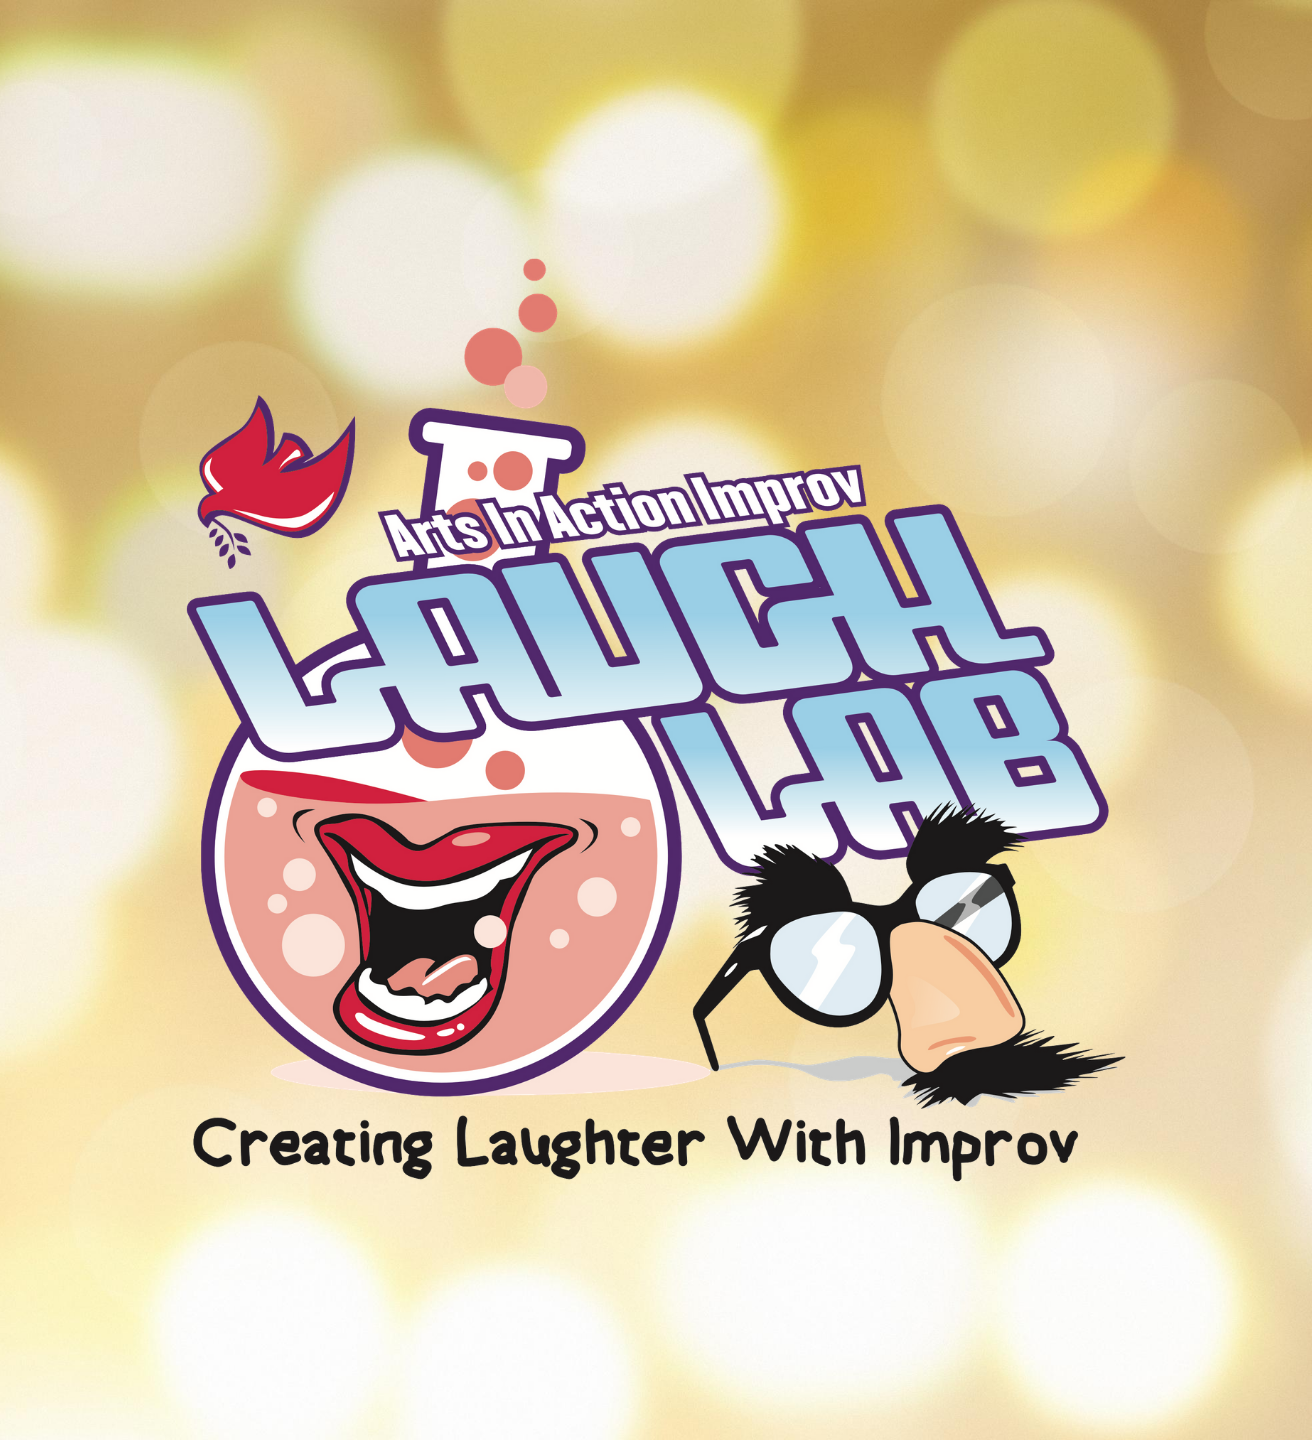 Laughlab - Comprehensive Comedy Program - Arts in Action